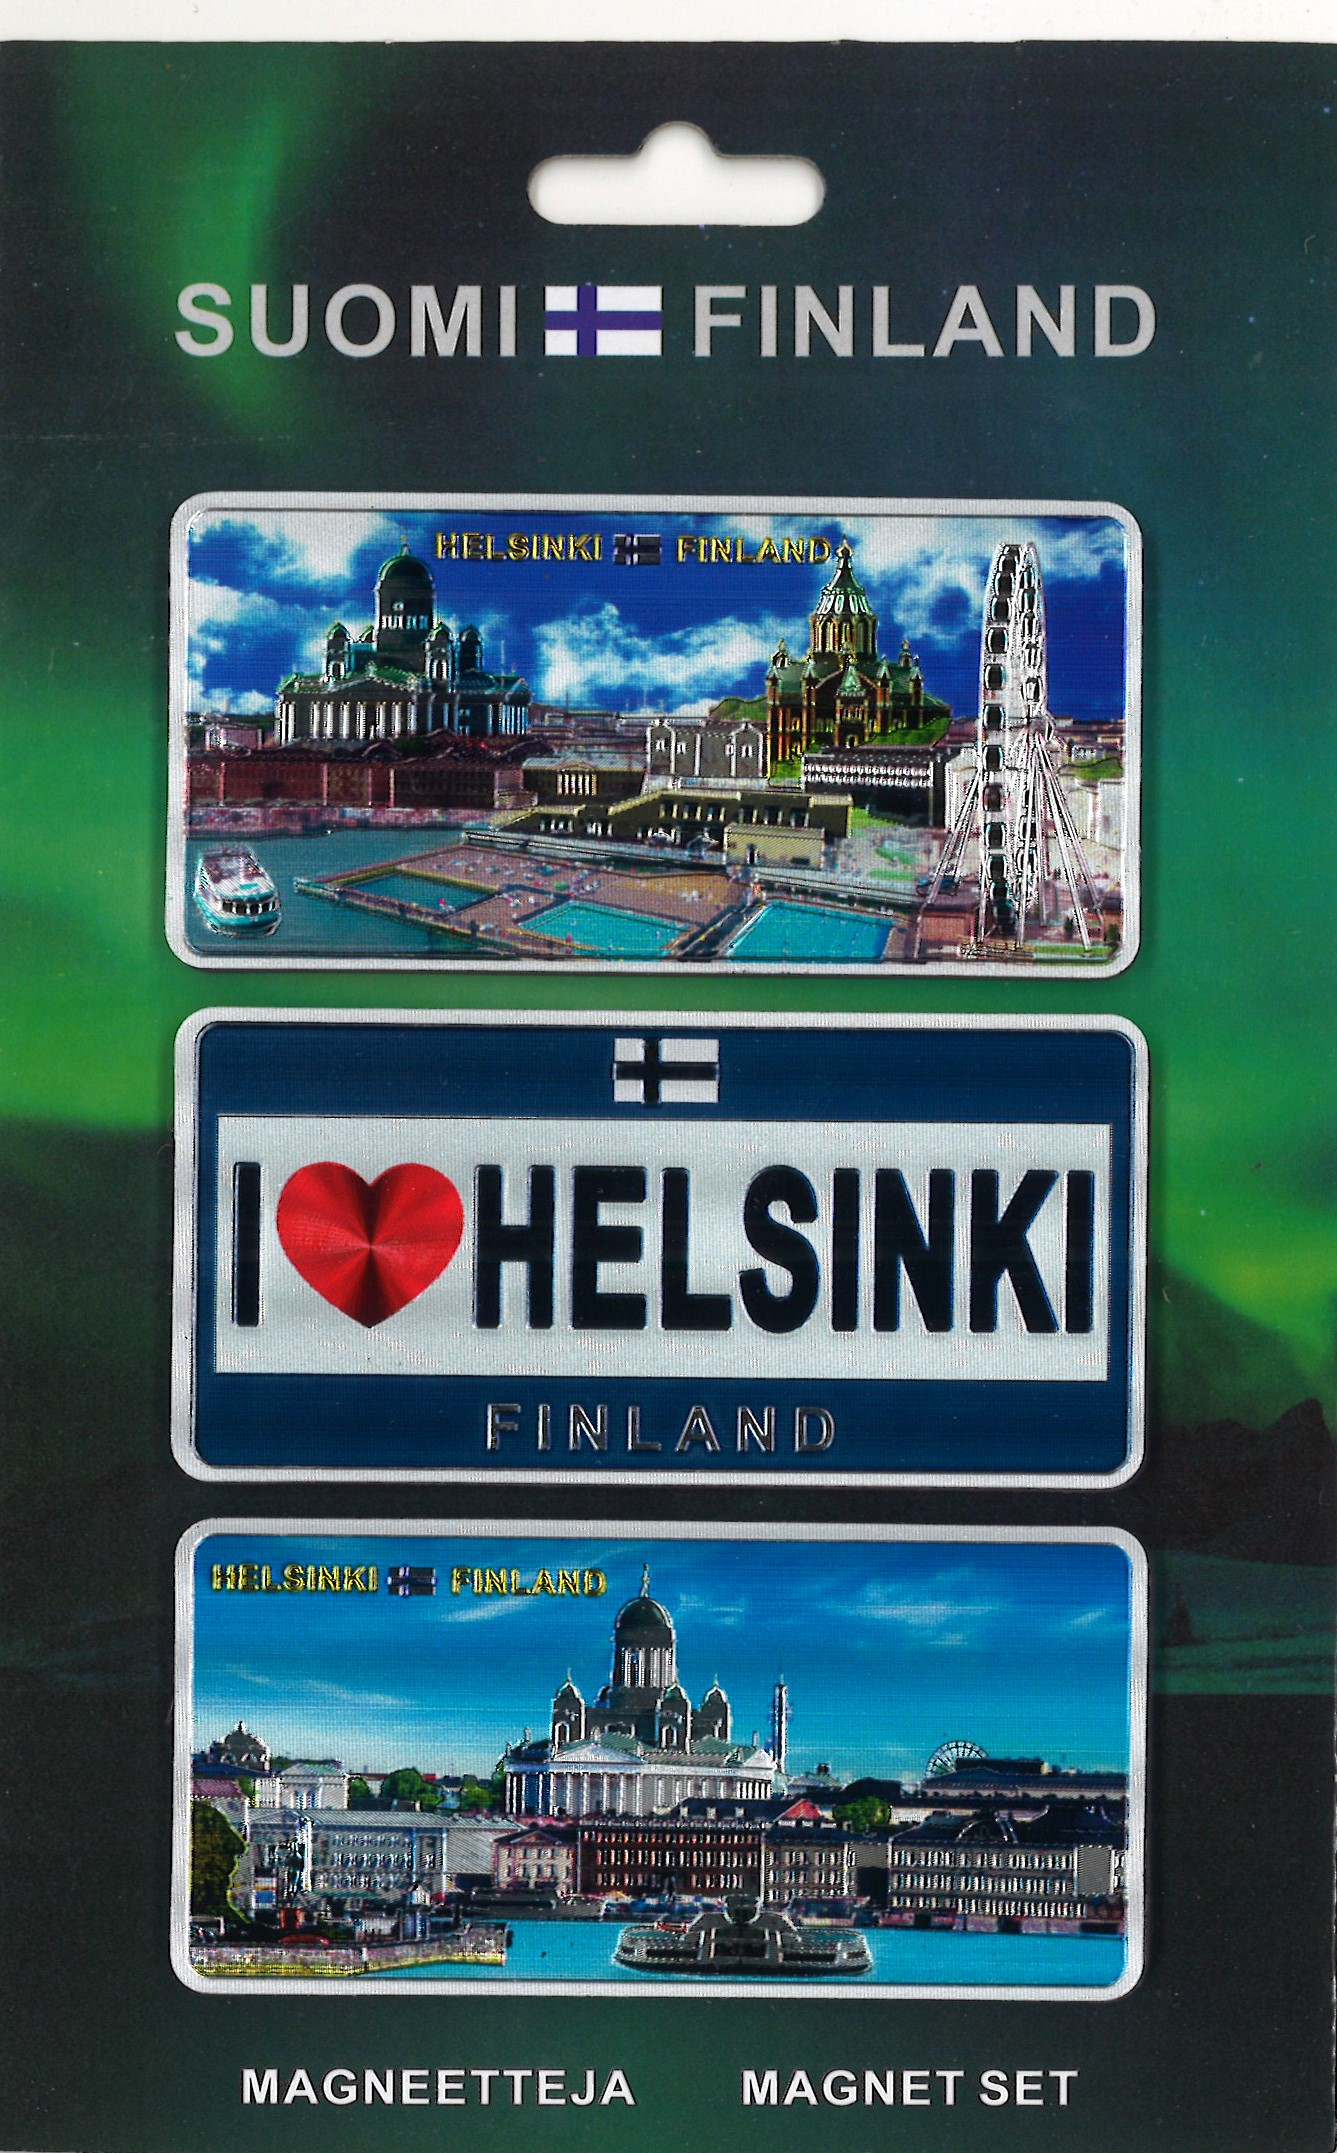 Magnets 3 pieces Helsinki - Finland